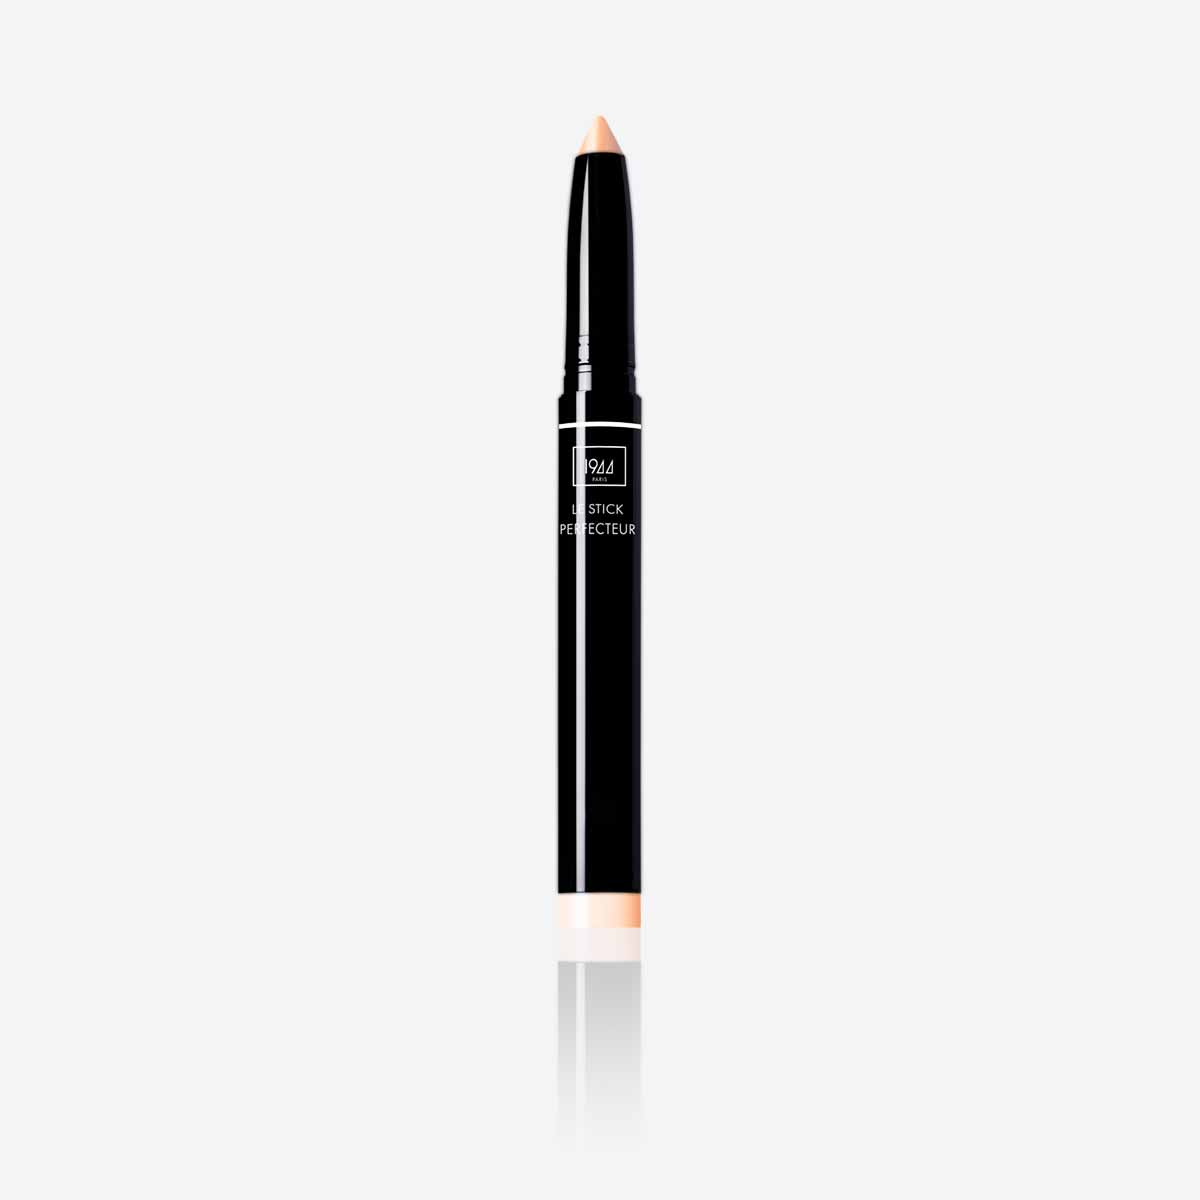 Le Stick Perfecteur 1944 - Medium Beige - Perfecting Stick